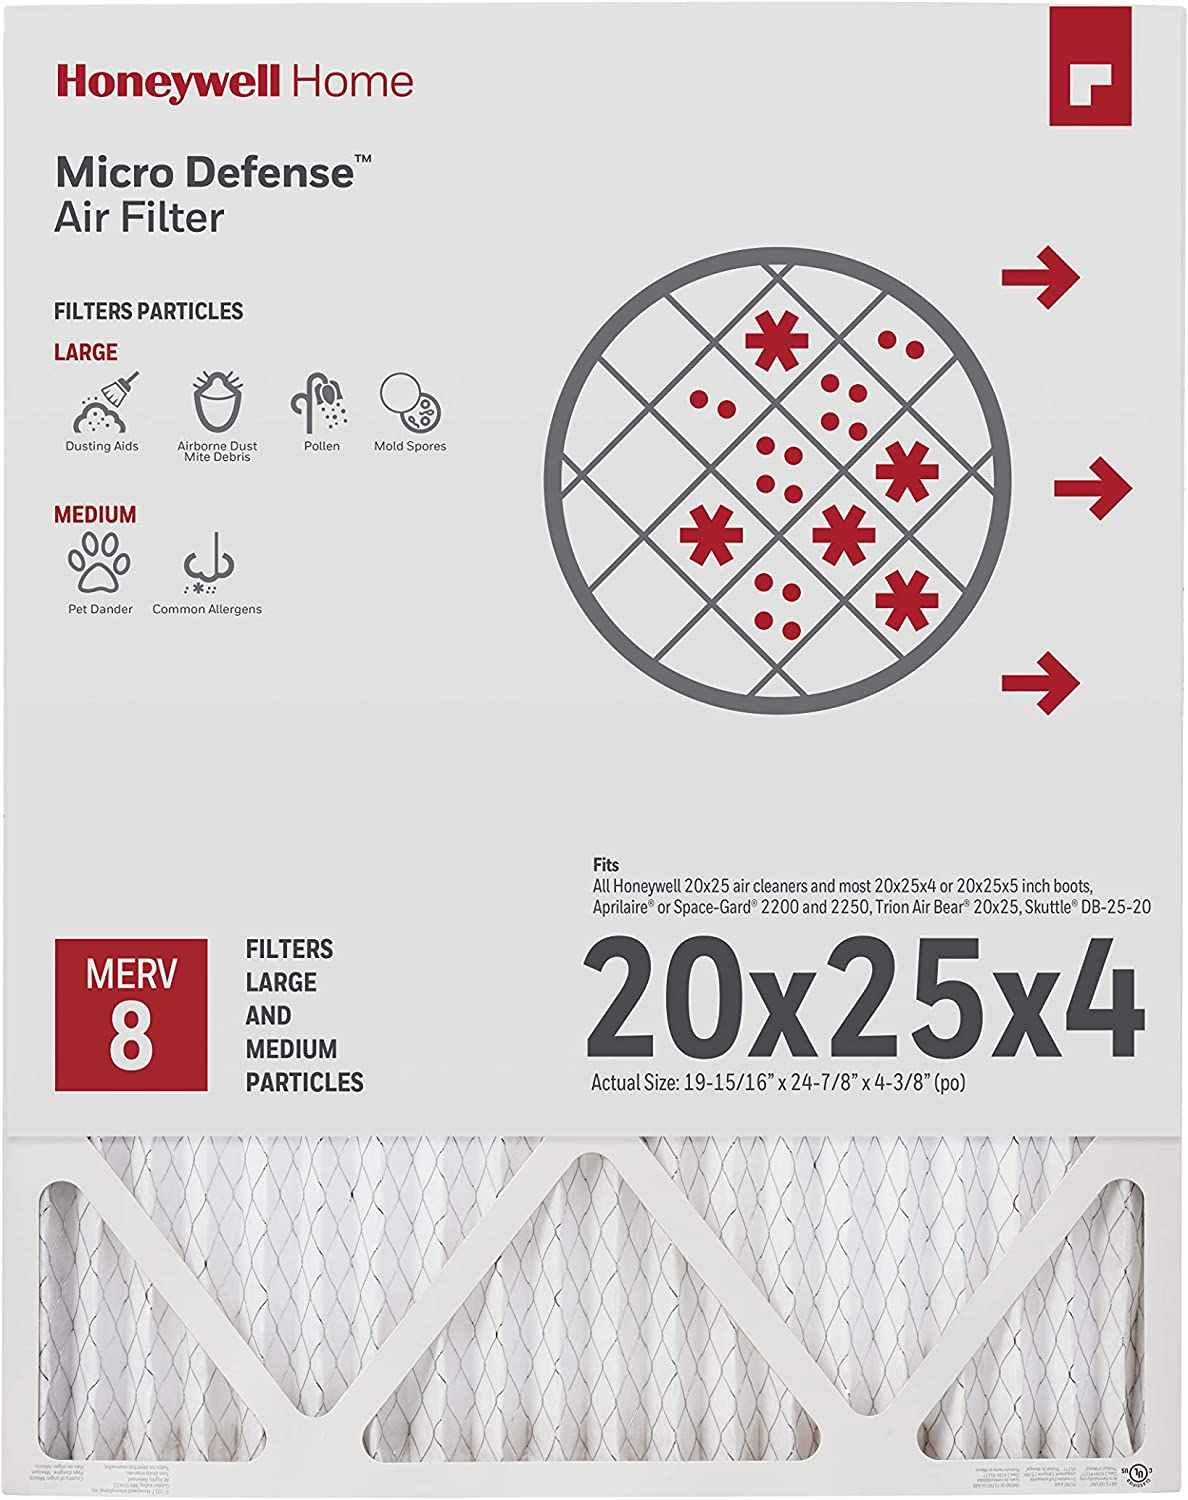 Merv 8 20x25x4 High Efficiency Furnace Filter For AprilAire 5 Pack 2200 2251